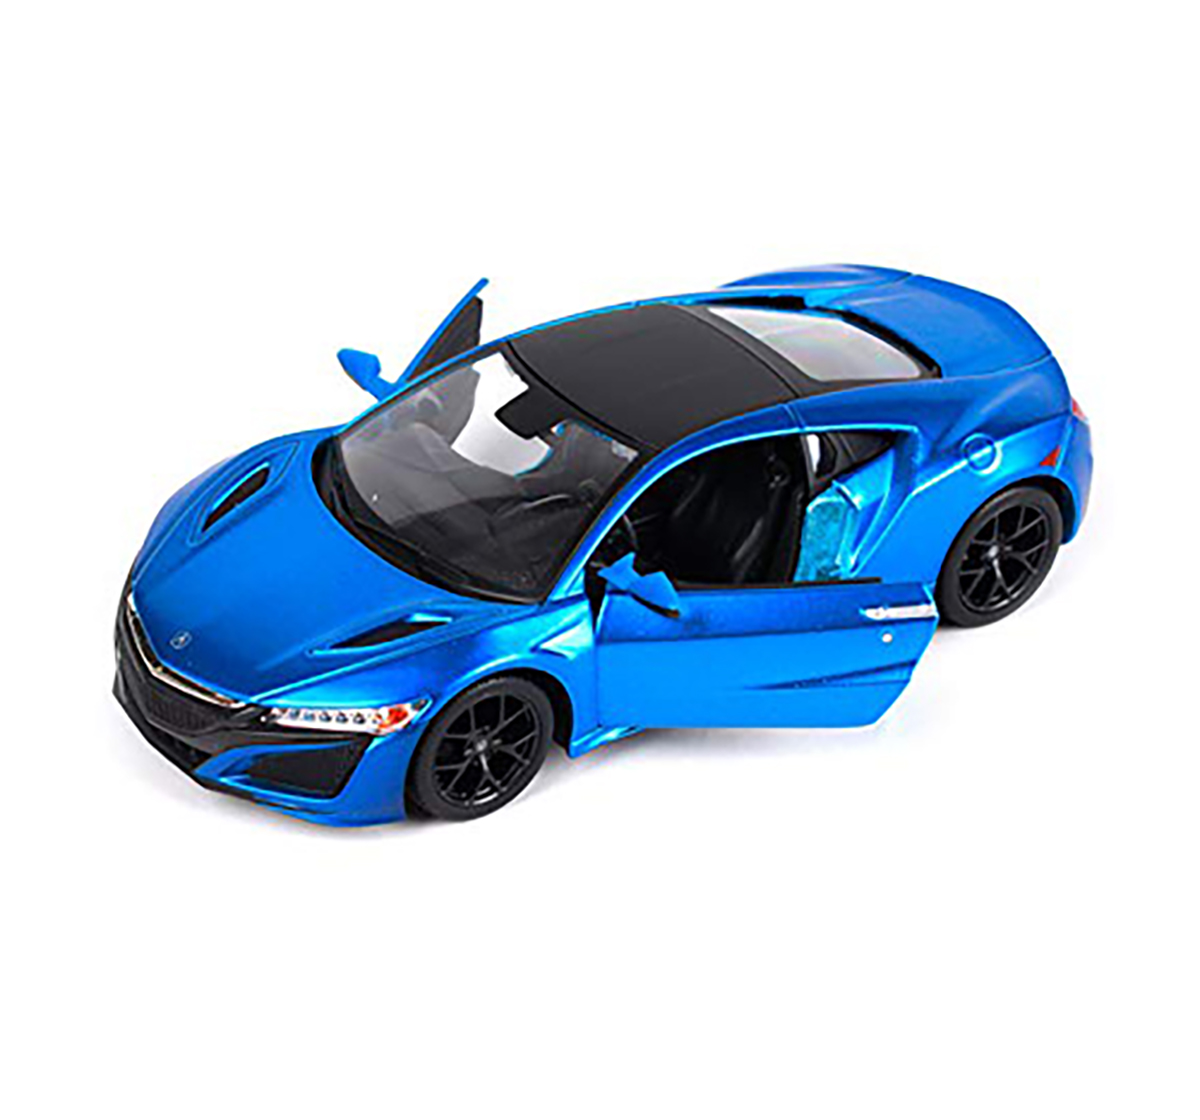 Msz | MSZ 1:31 Honda Acura NSX Car with Light and Sound for Kids age 3Y+ (Blue)